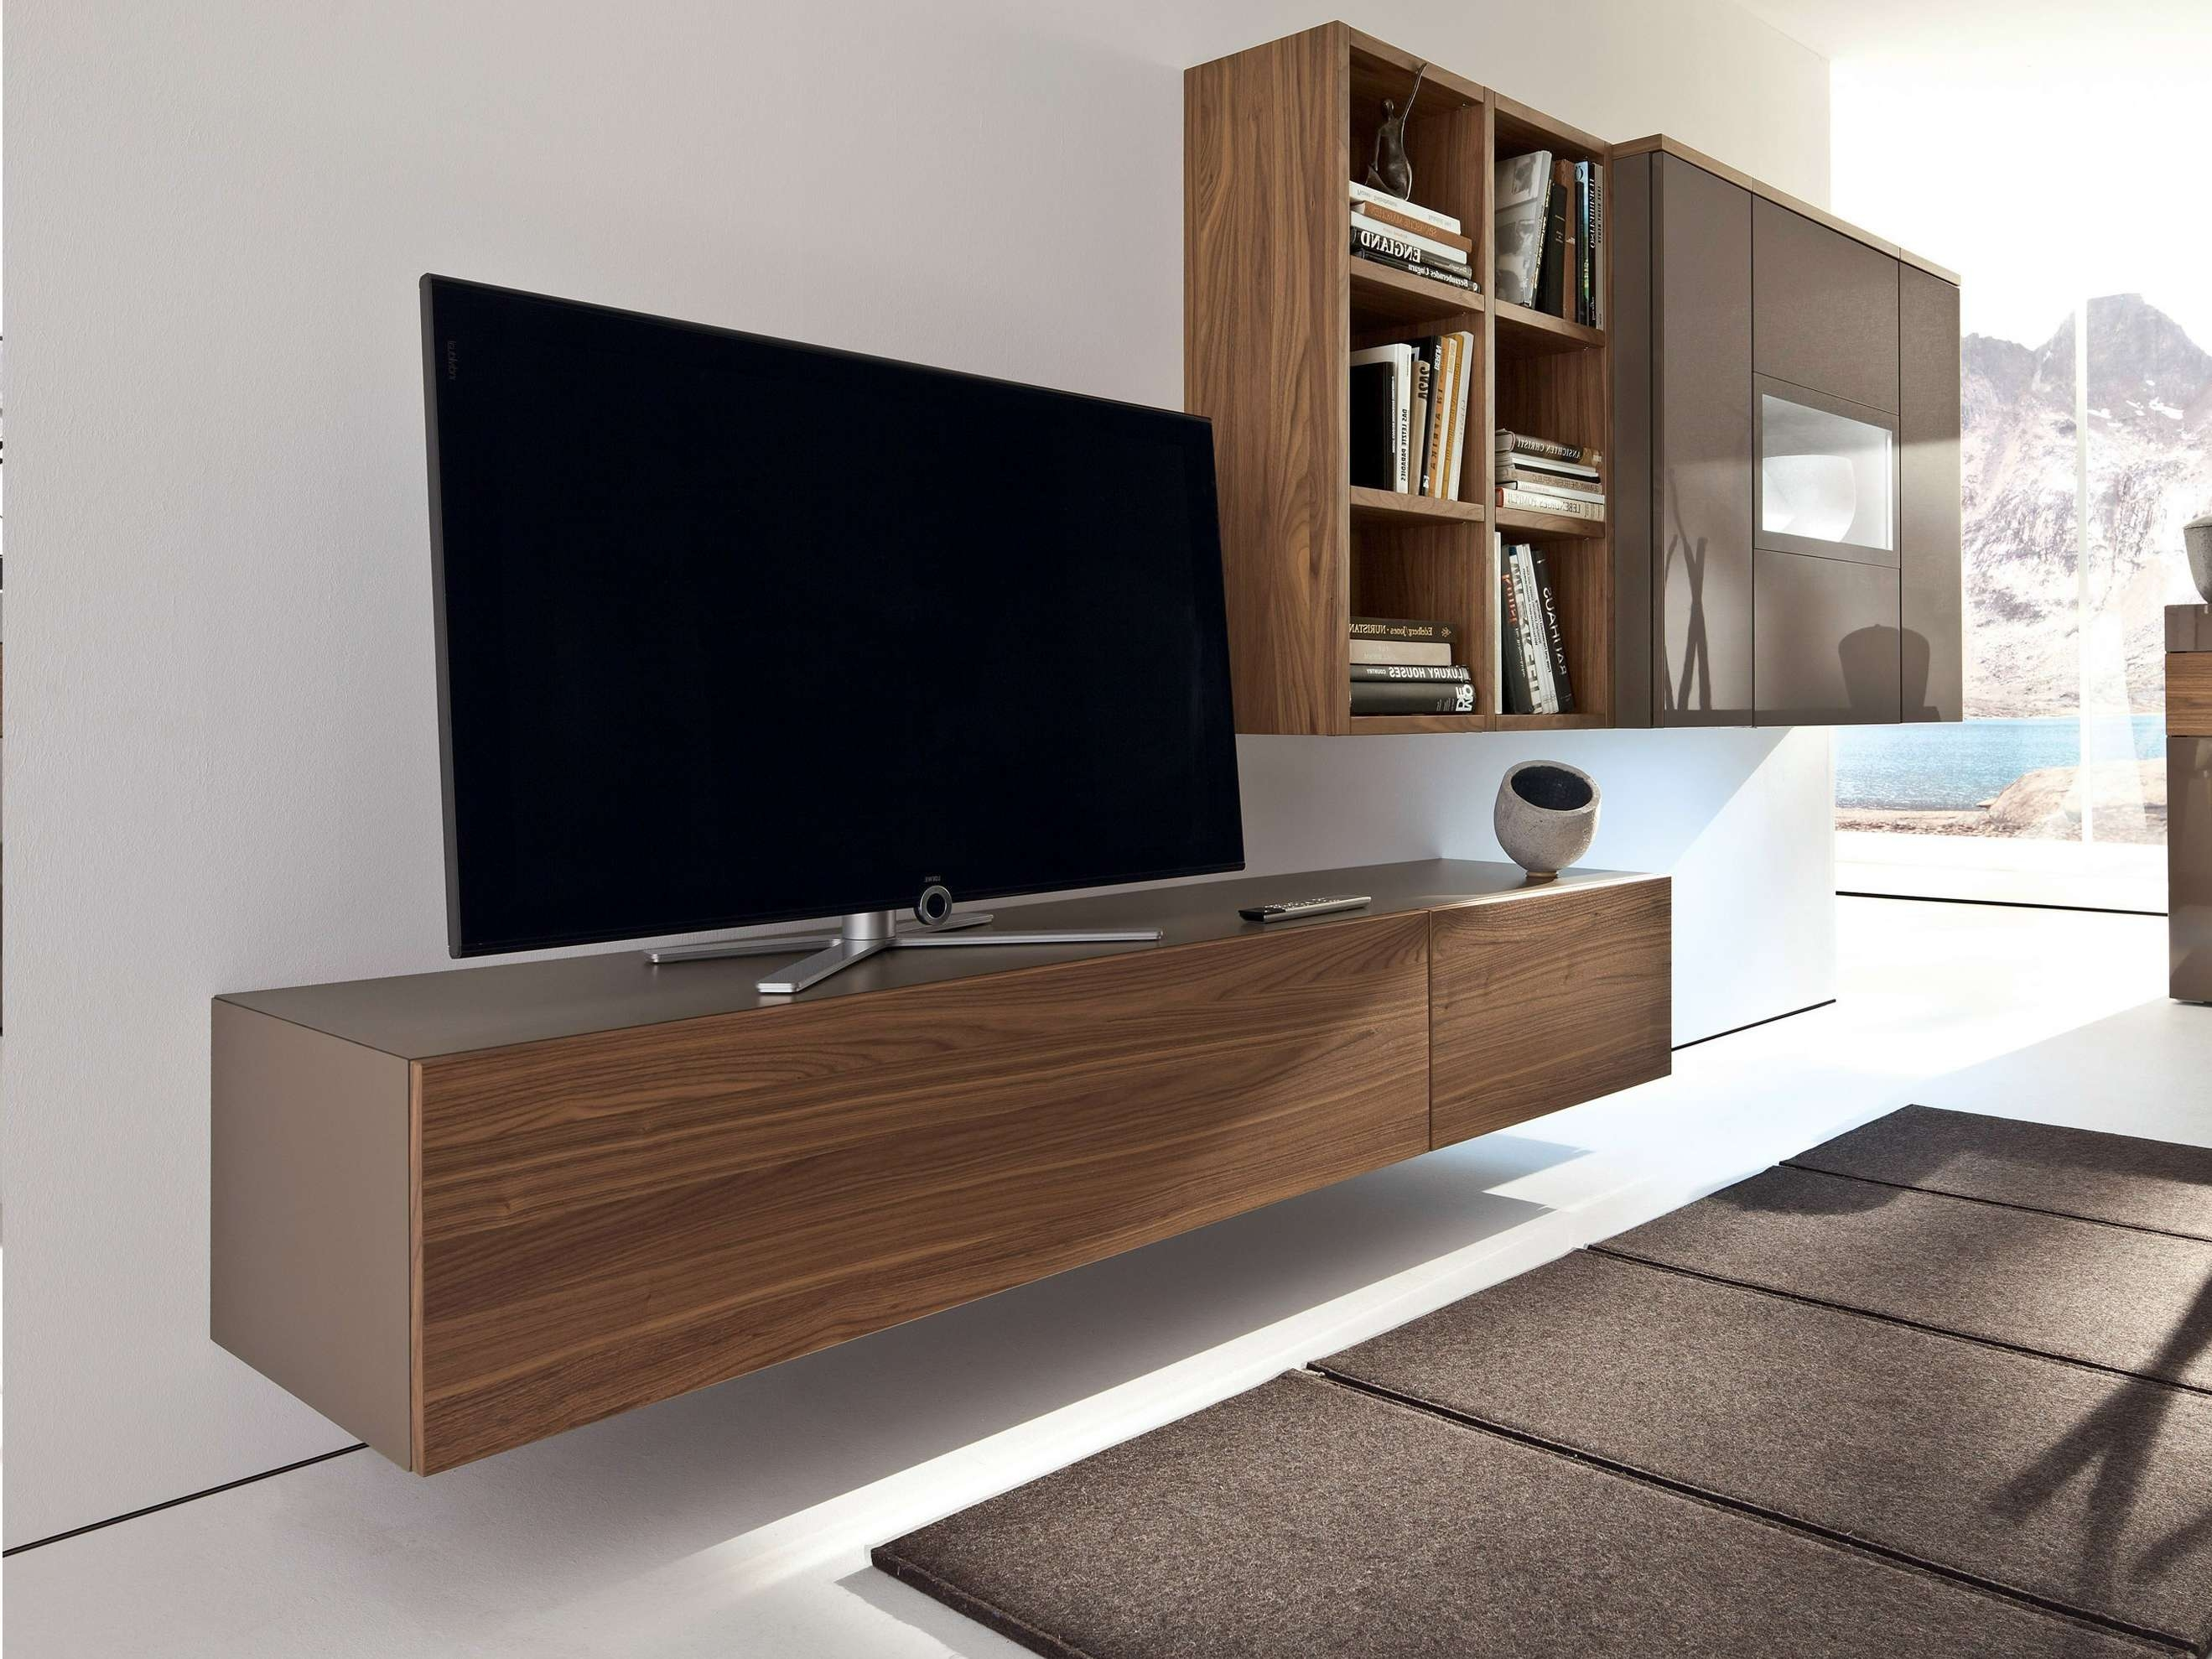 Hanging Media Console 20 Inspirations Of Modern Low Profile Tv Stands